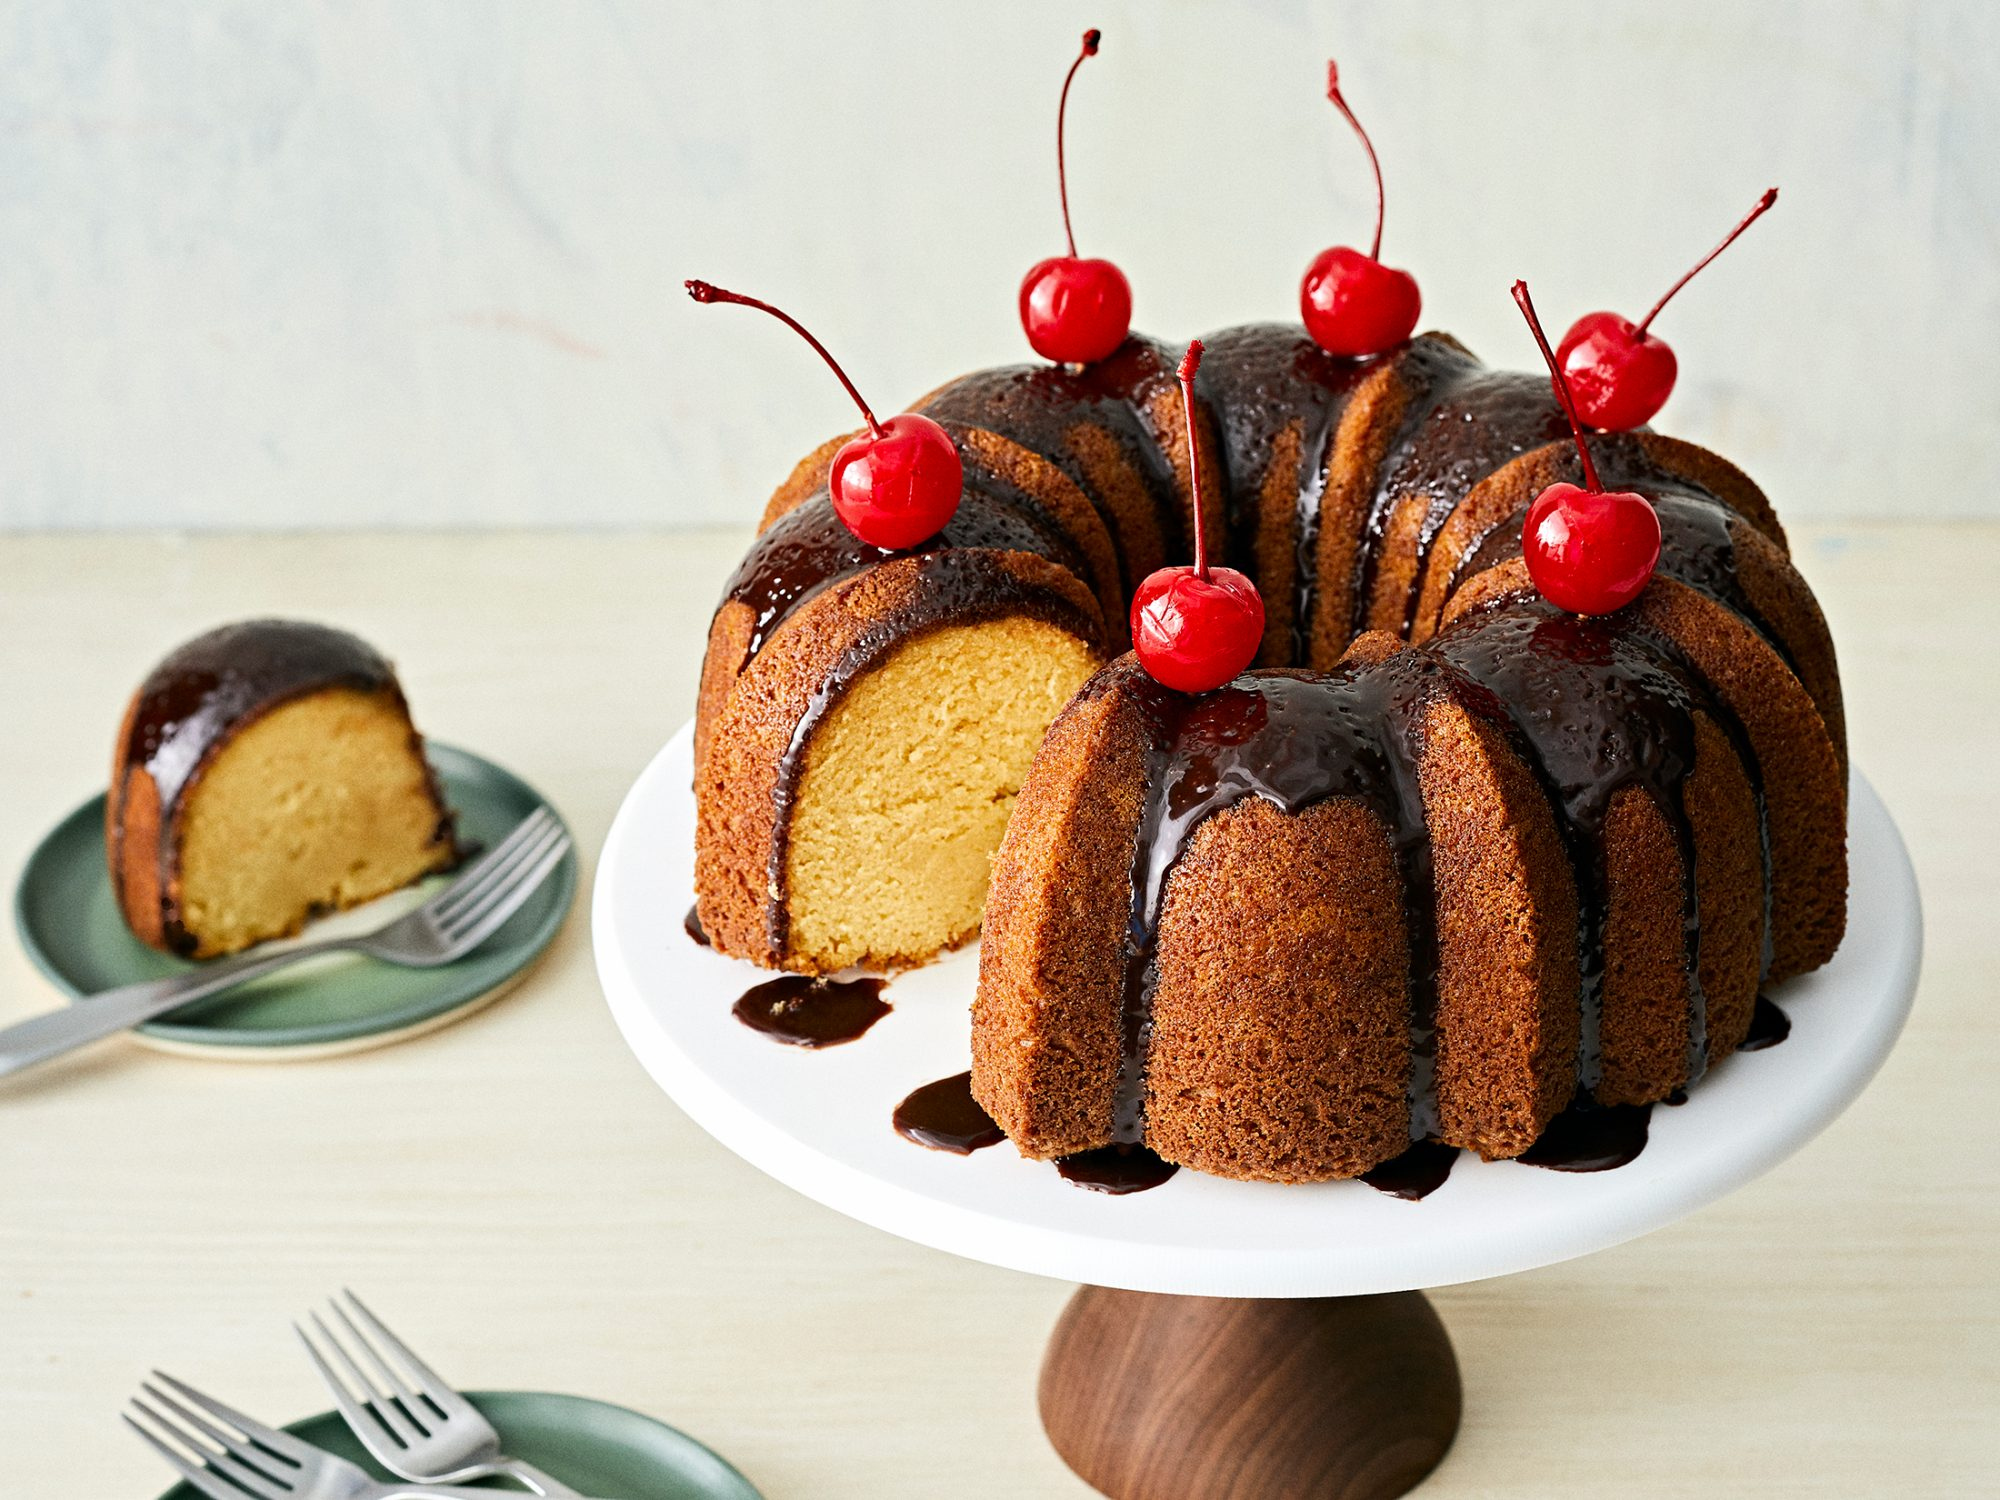 Bring a Little Bit of Vacation to Your Table With This Mudslide Cake